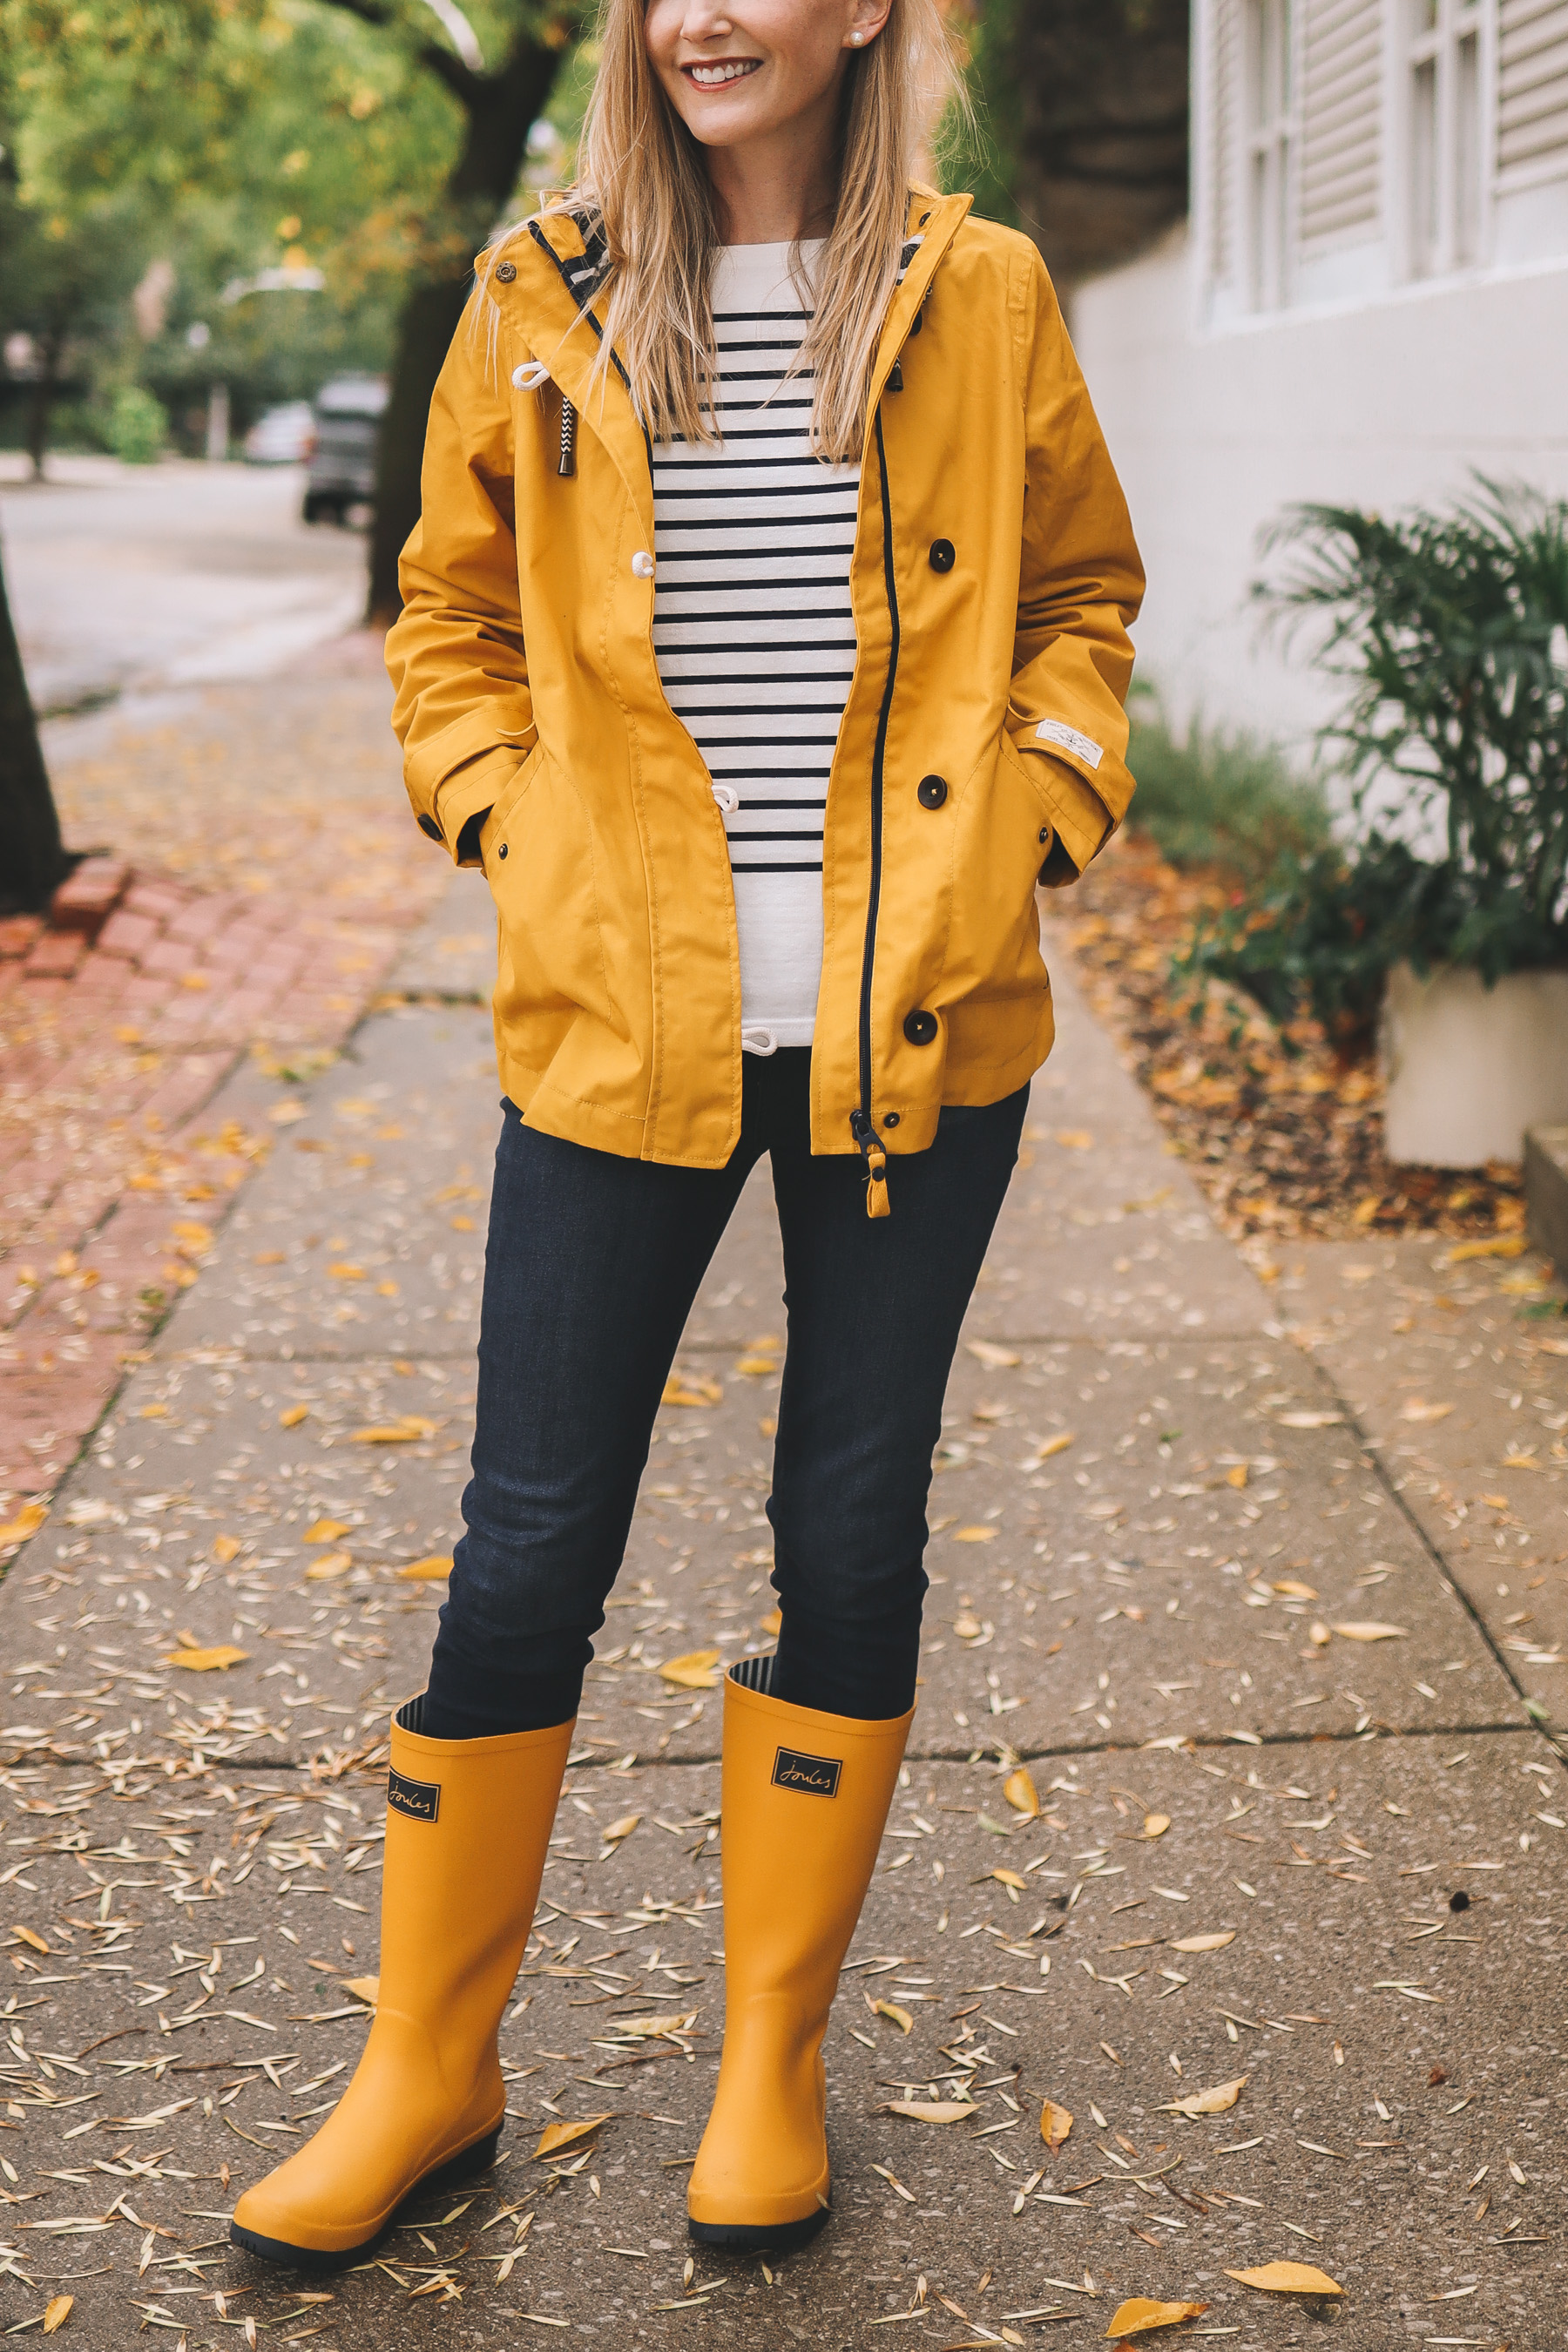 yellow Joules rain gear